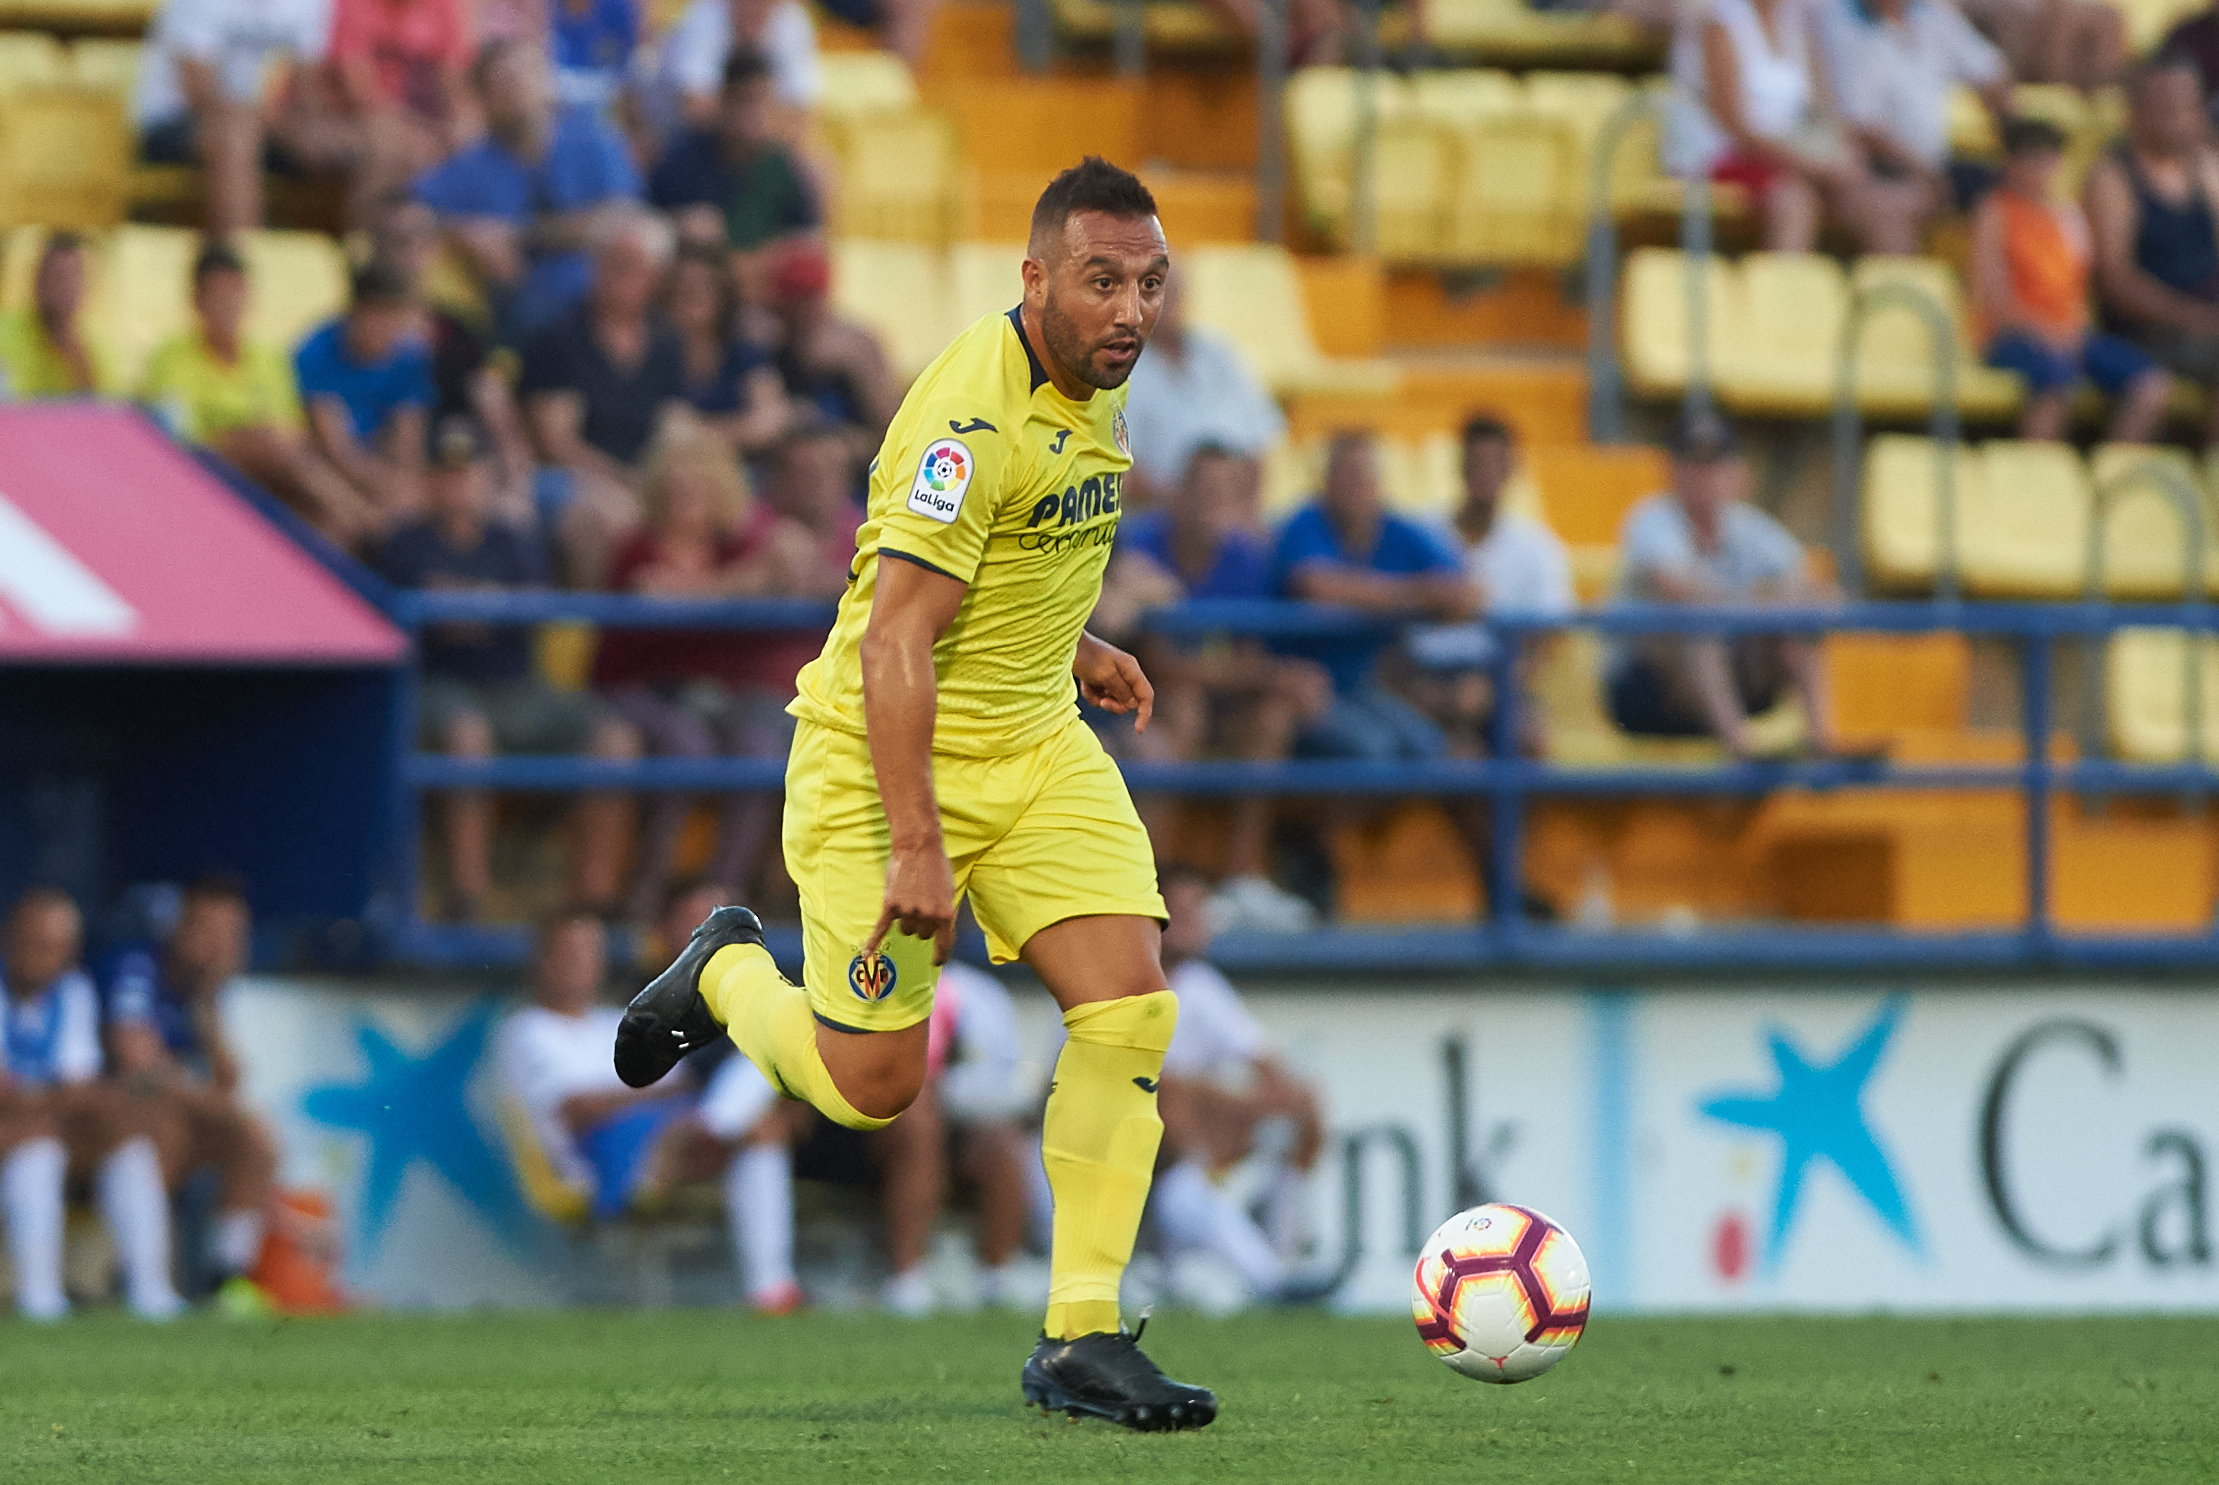 Santi Cazorla relieved after avoiding foot amputation, signing for Villarreal